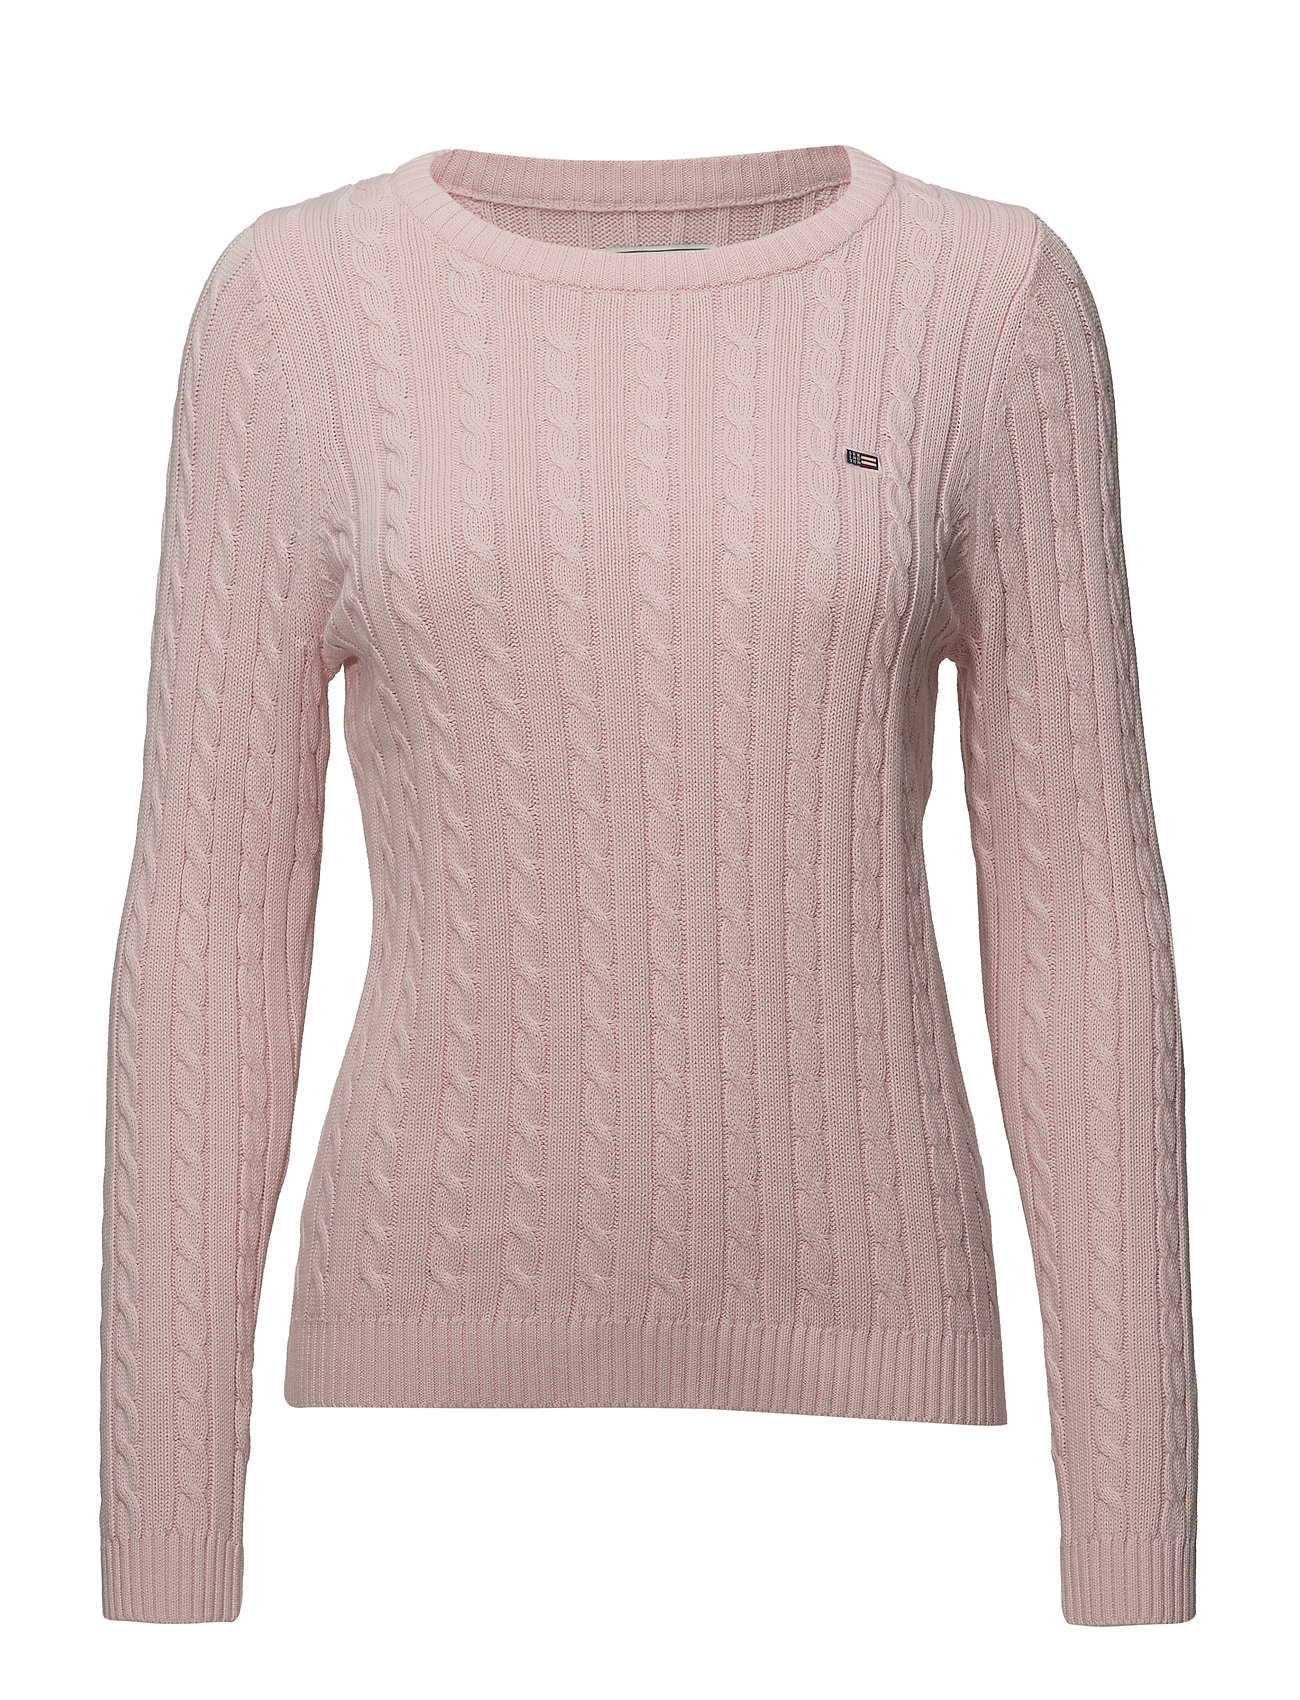 Felizia Cable Felizia Cable SweaterpinkLexington Clothing nkO0Pw